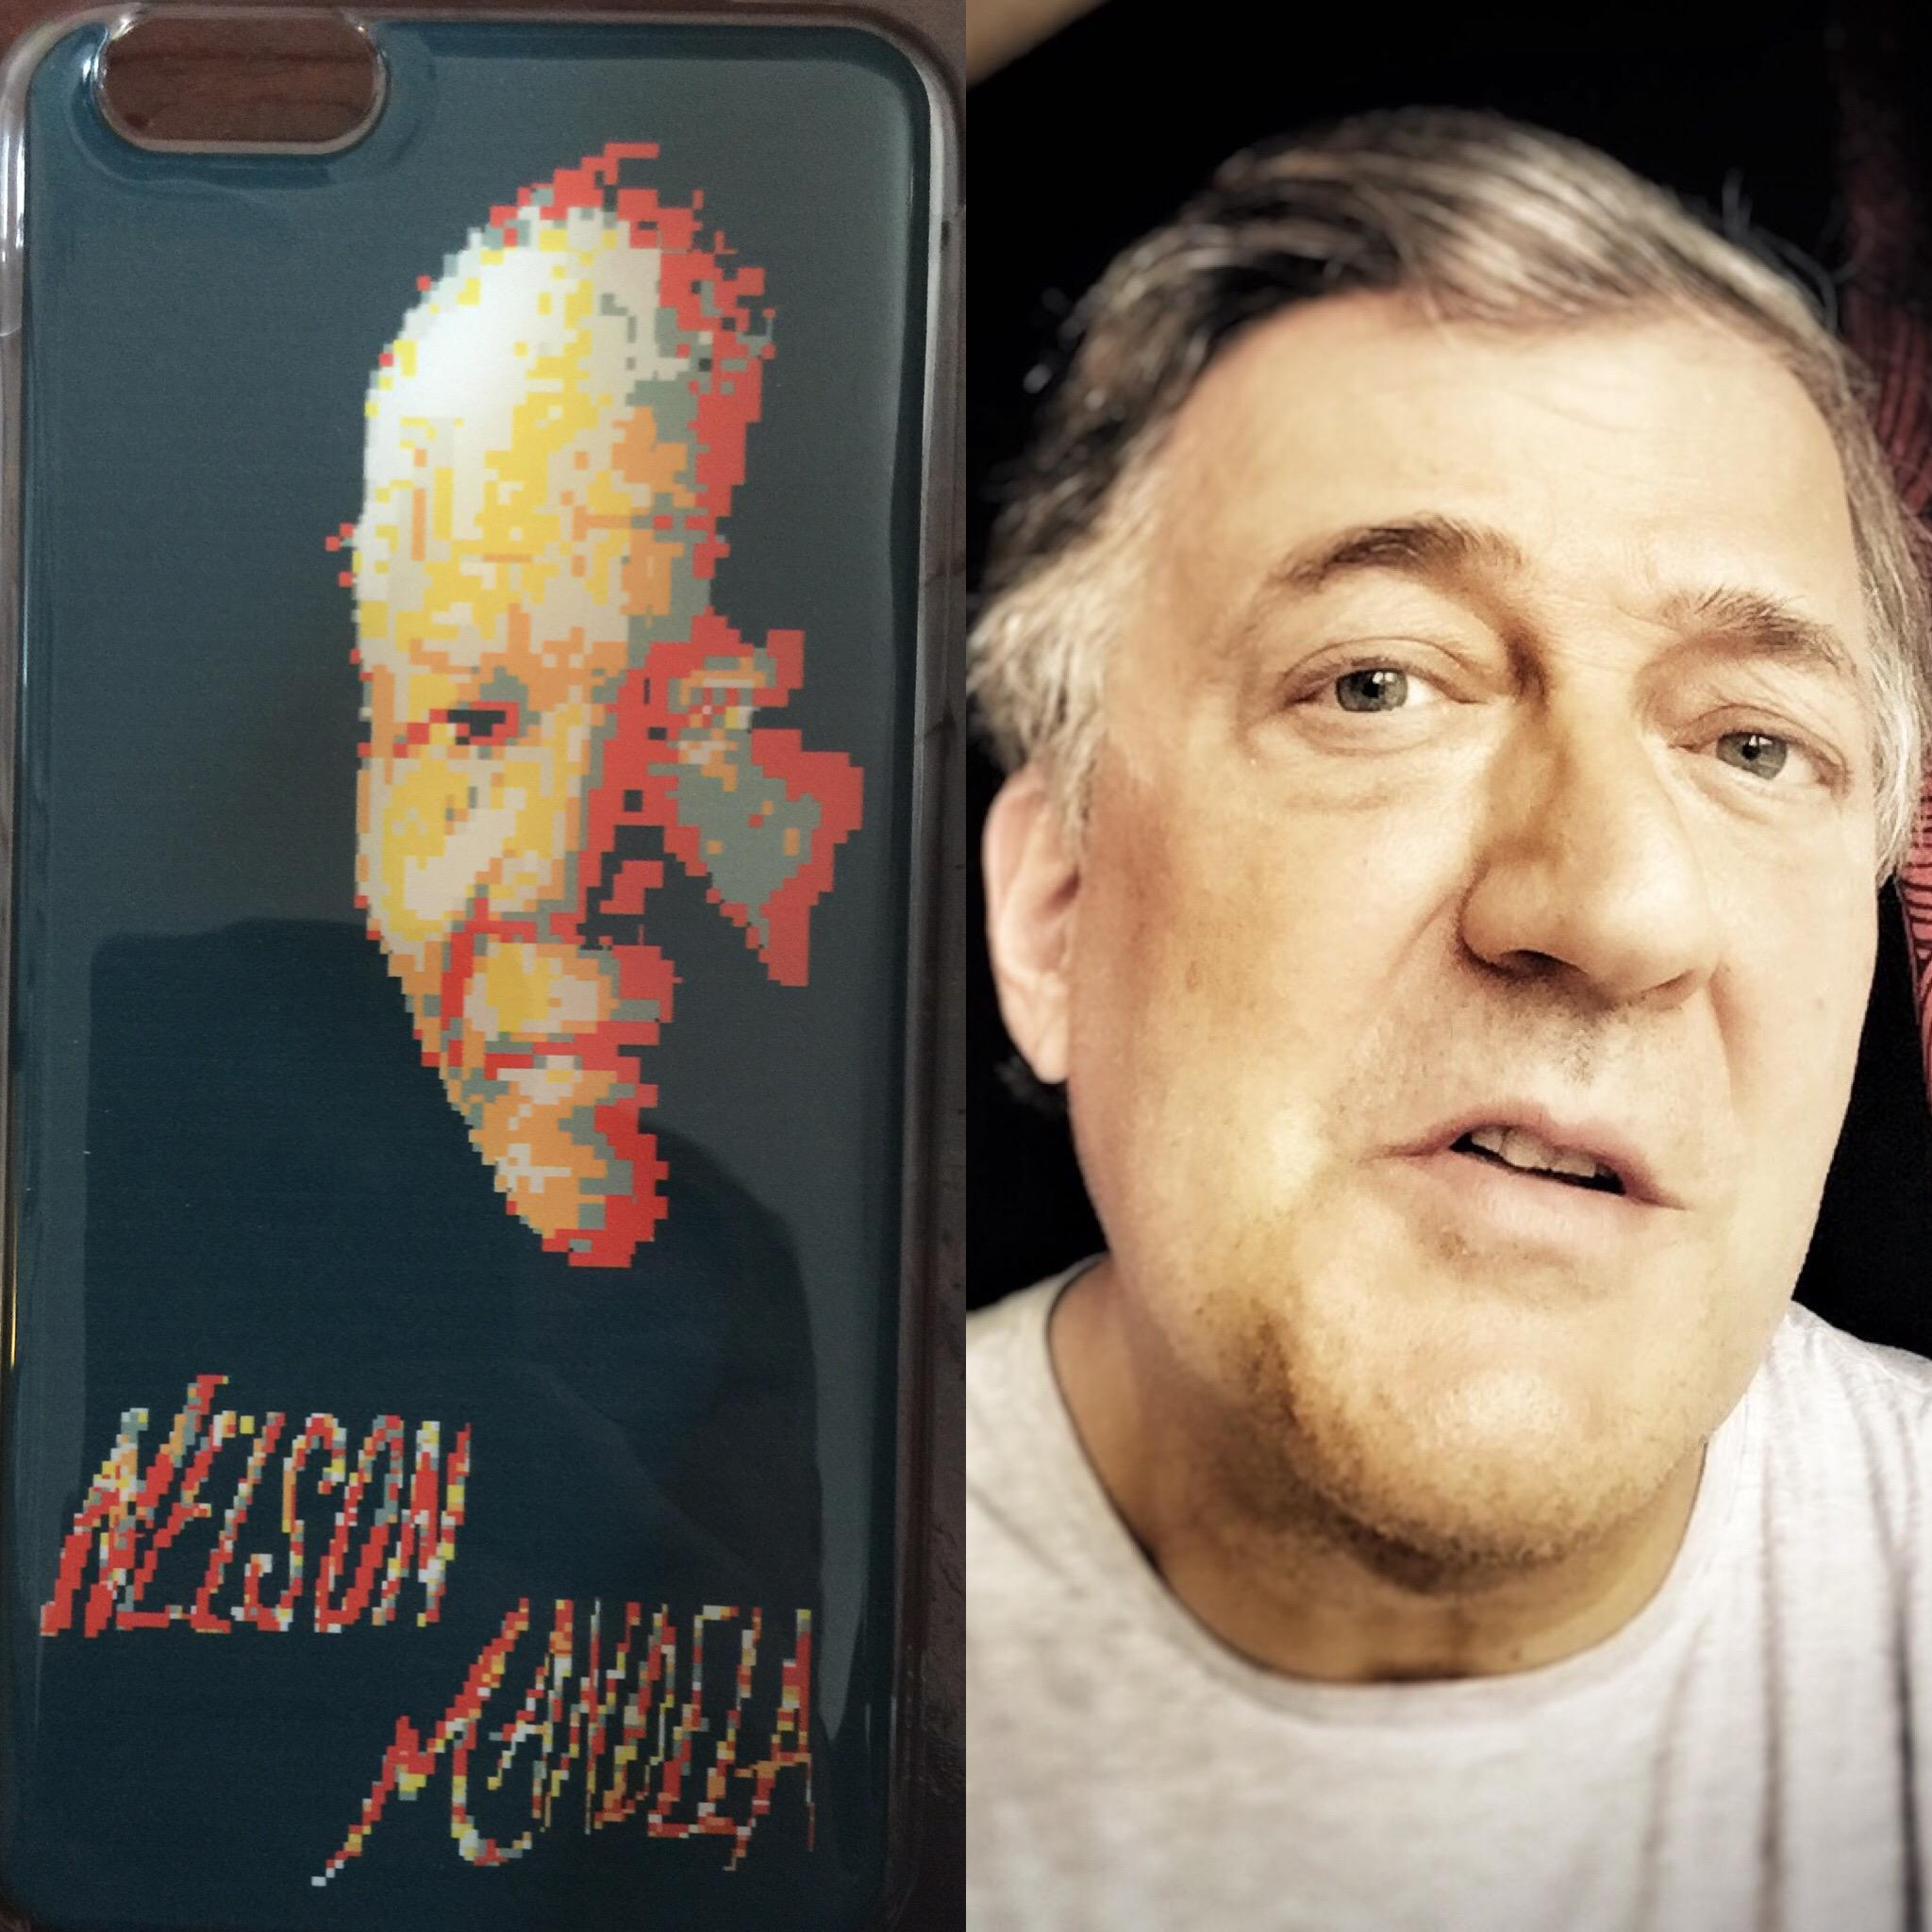 Stand by #The176 prisoners of conscience: phone cases for a cause @aiww portraits for @amnesty http://t.co/EmixJq6x1N http://t.co/Li6D9Qa8Yf